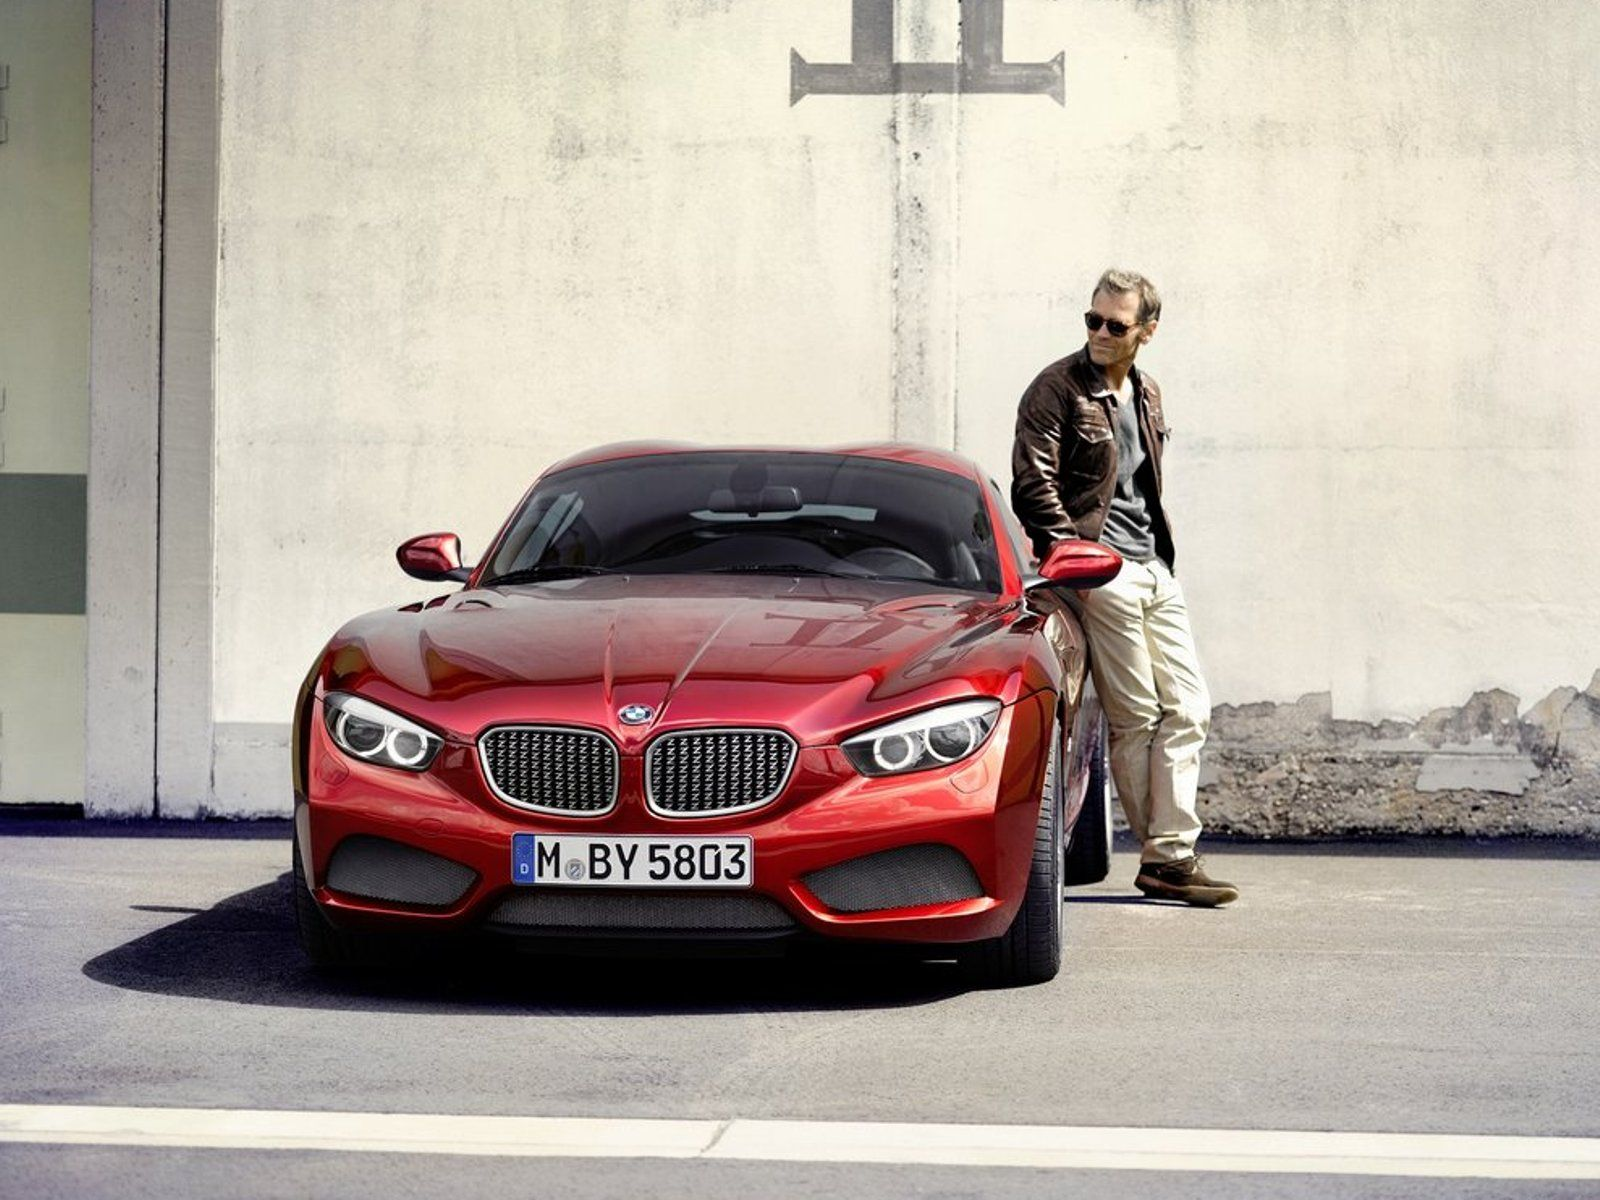 2012 BMW Zagato Coupe Concept Front Angle (8) | BMW | Pinterest ...